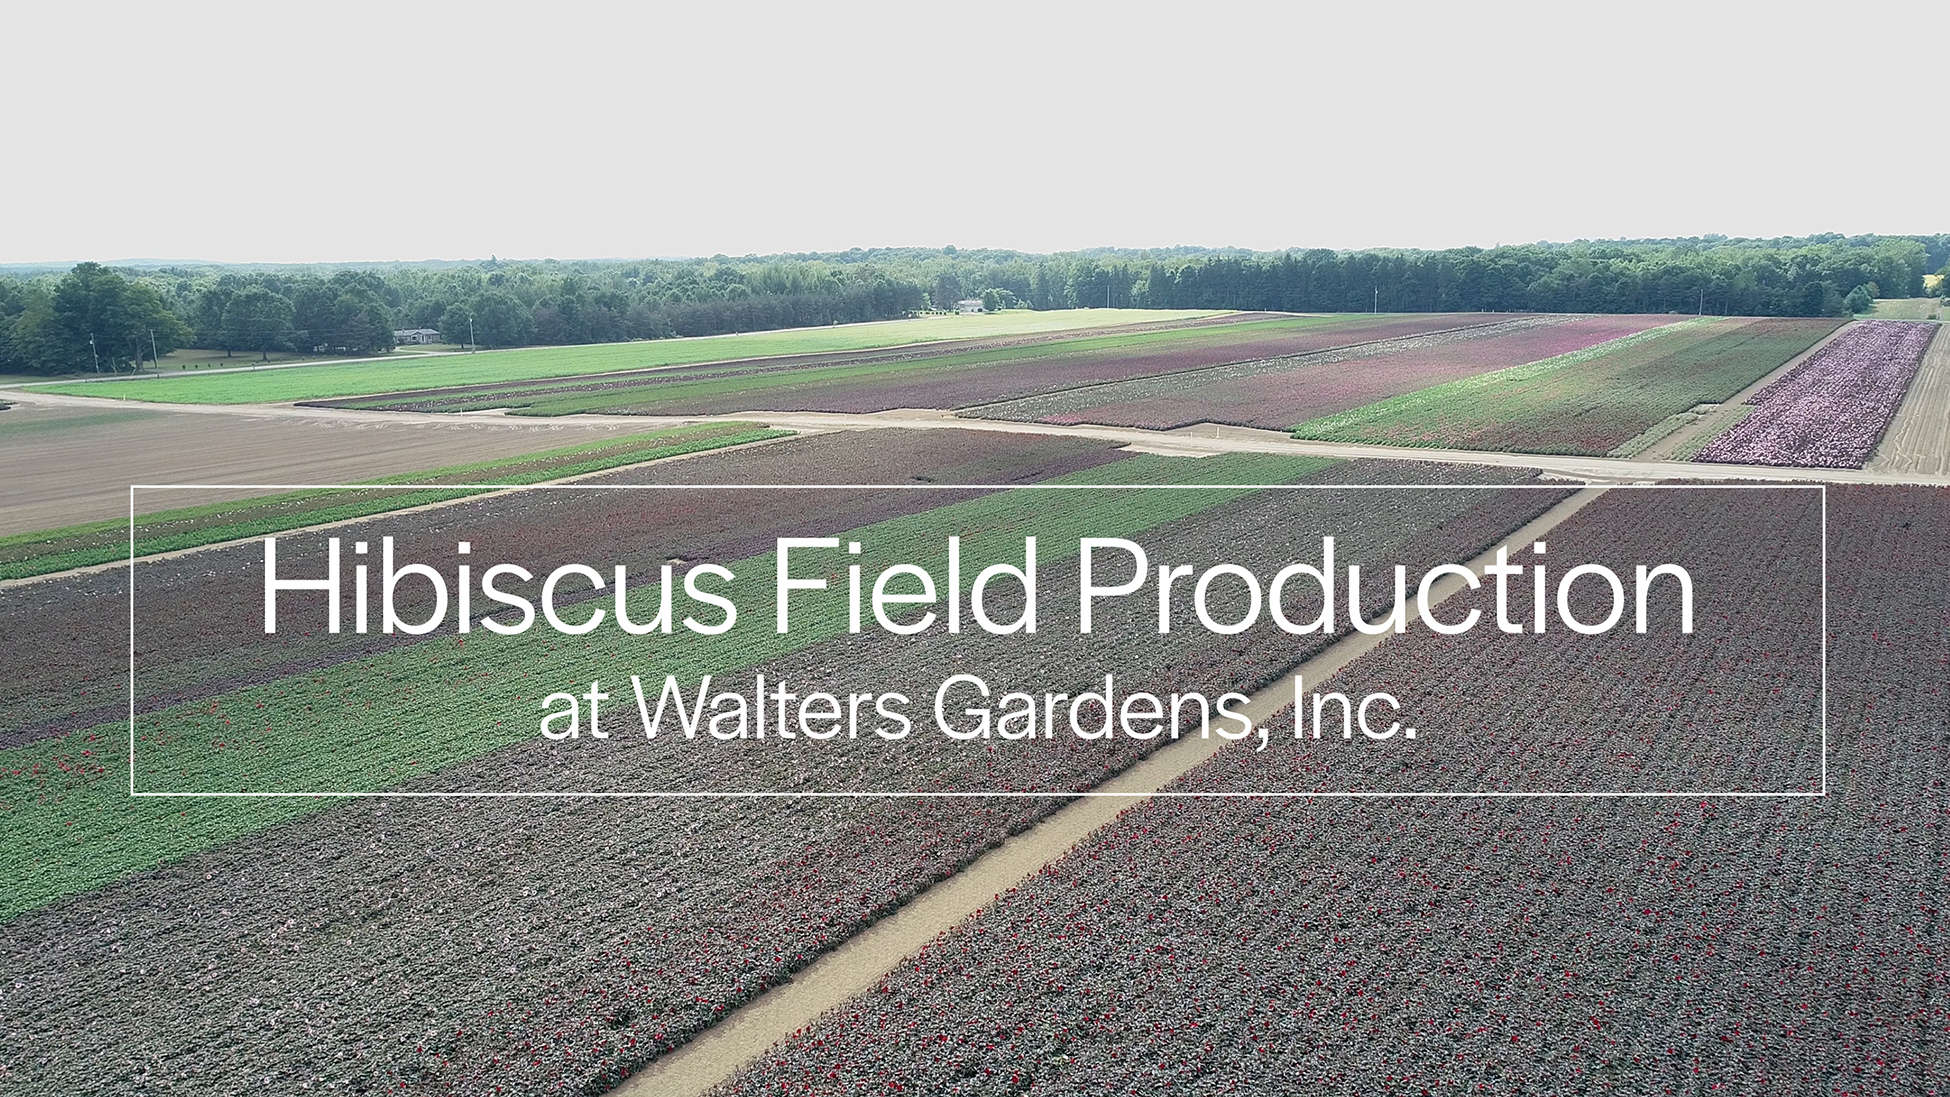 Hardy Hibiscus Fields as seen by Drone